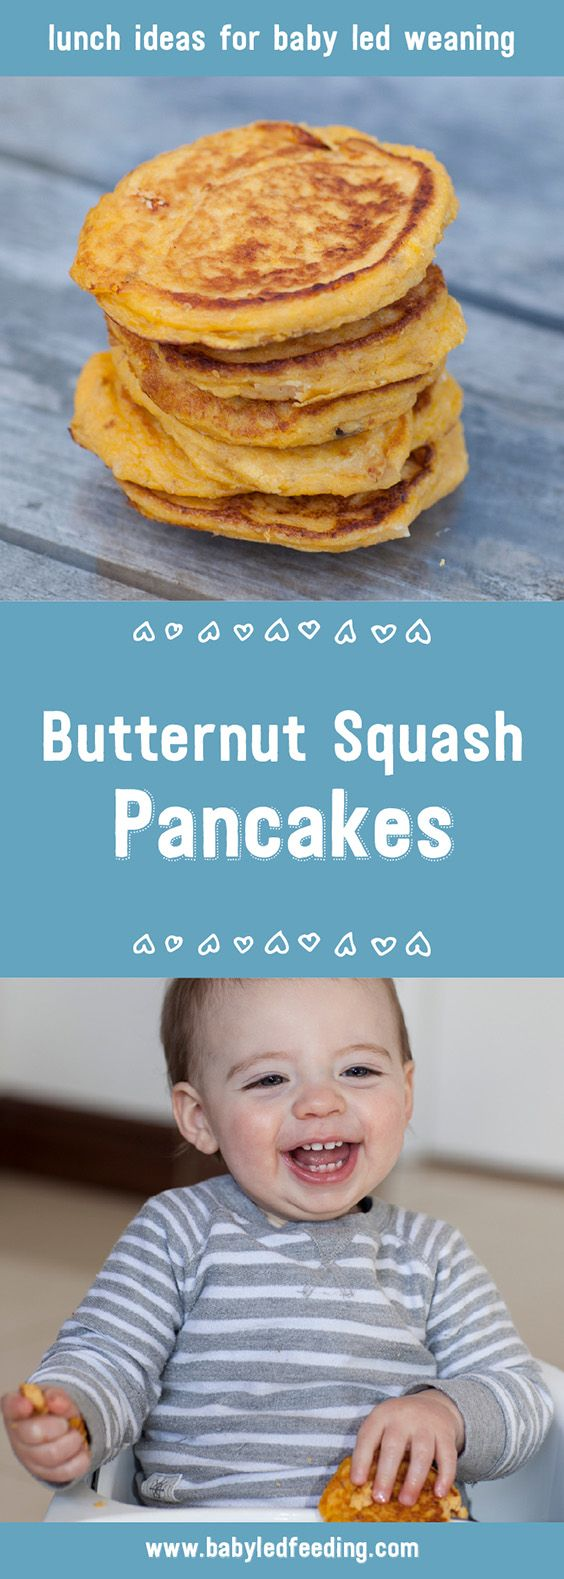 Butternut Squash and Goats Cheese Pancakes are perfect for tiny little baby led weaning hands. These pancakes are a perfect recipe for blw.